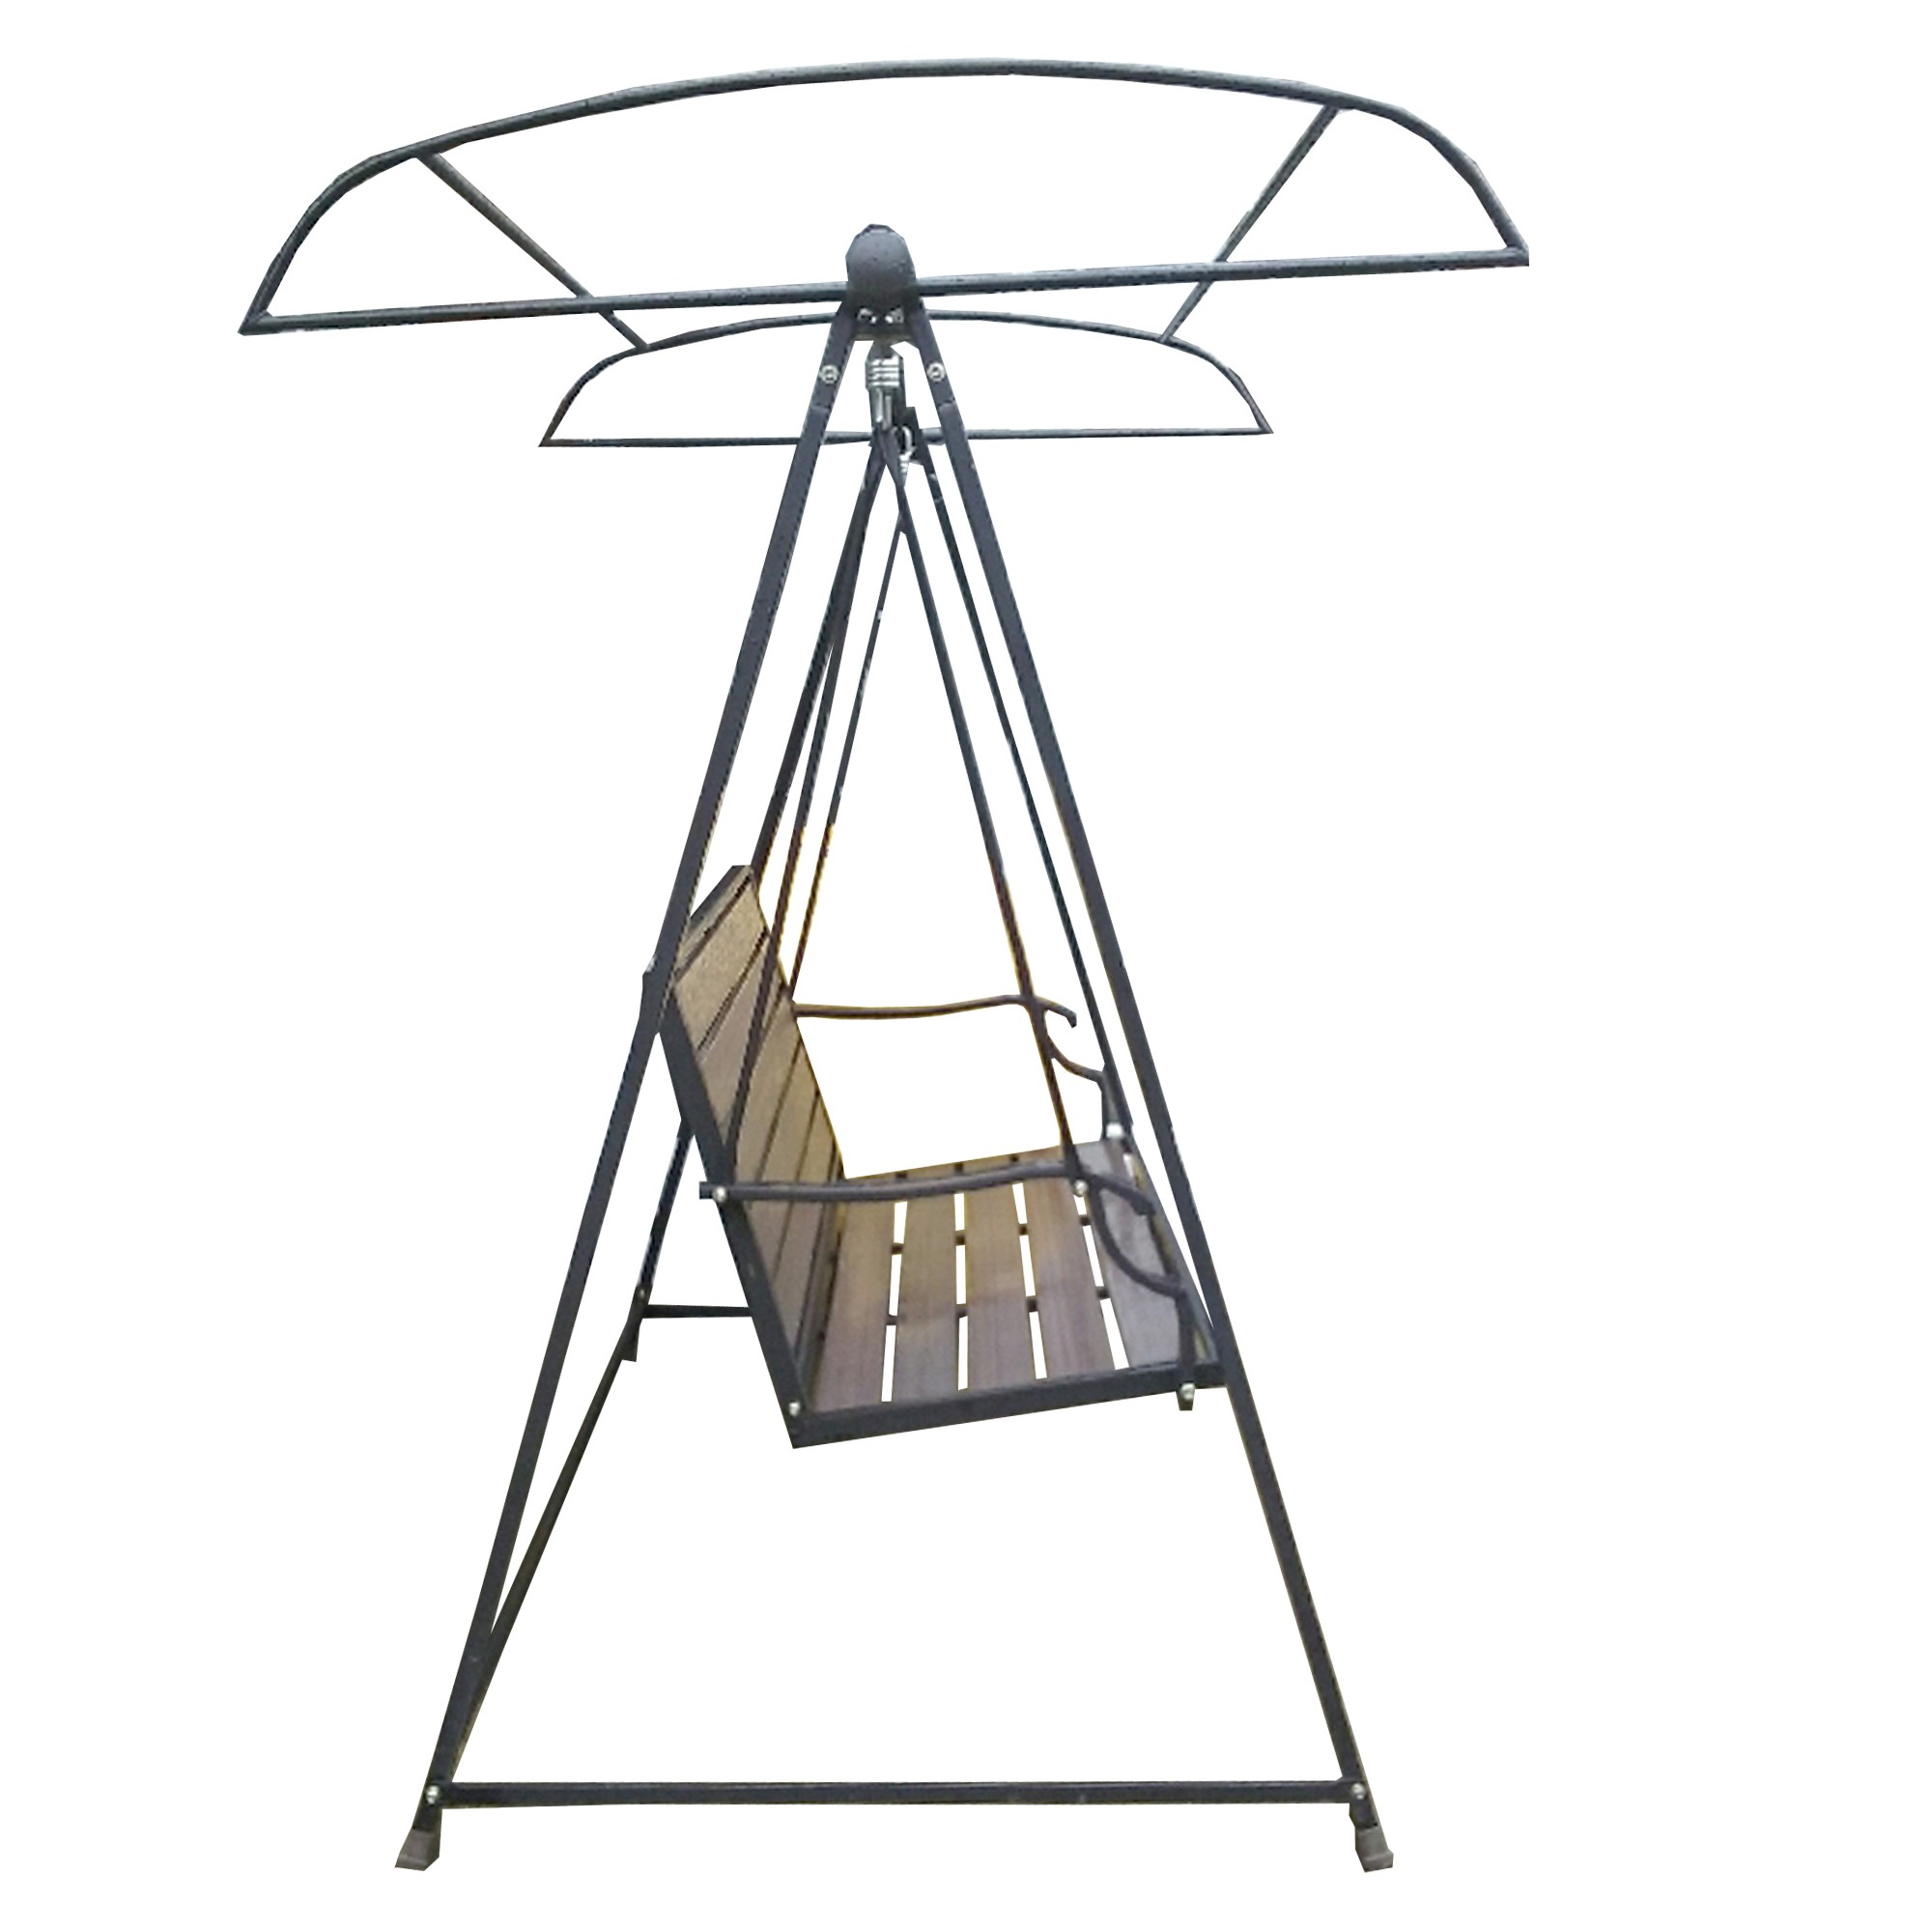 Replacement Canopy For Kroger Wood Seat Swing Garden Winds